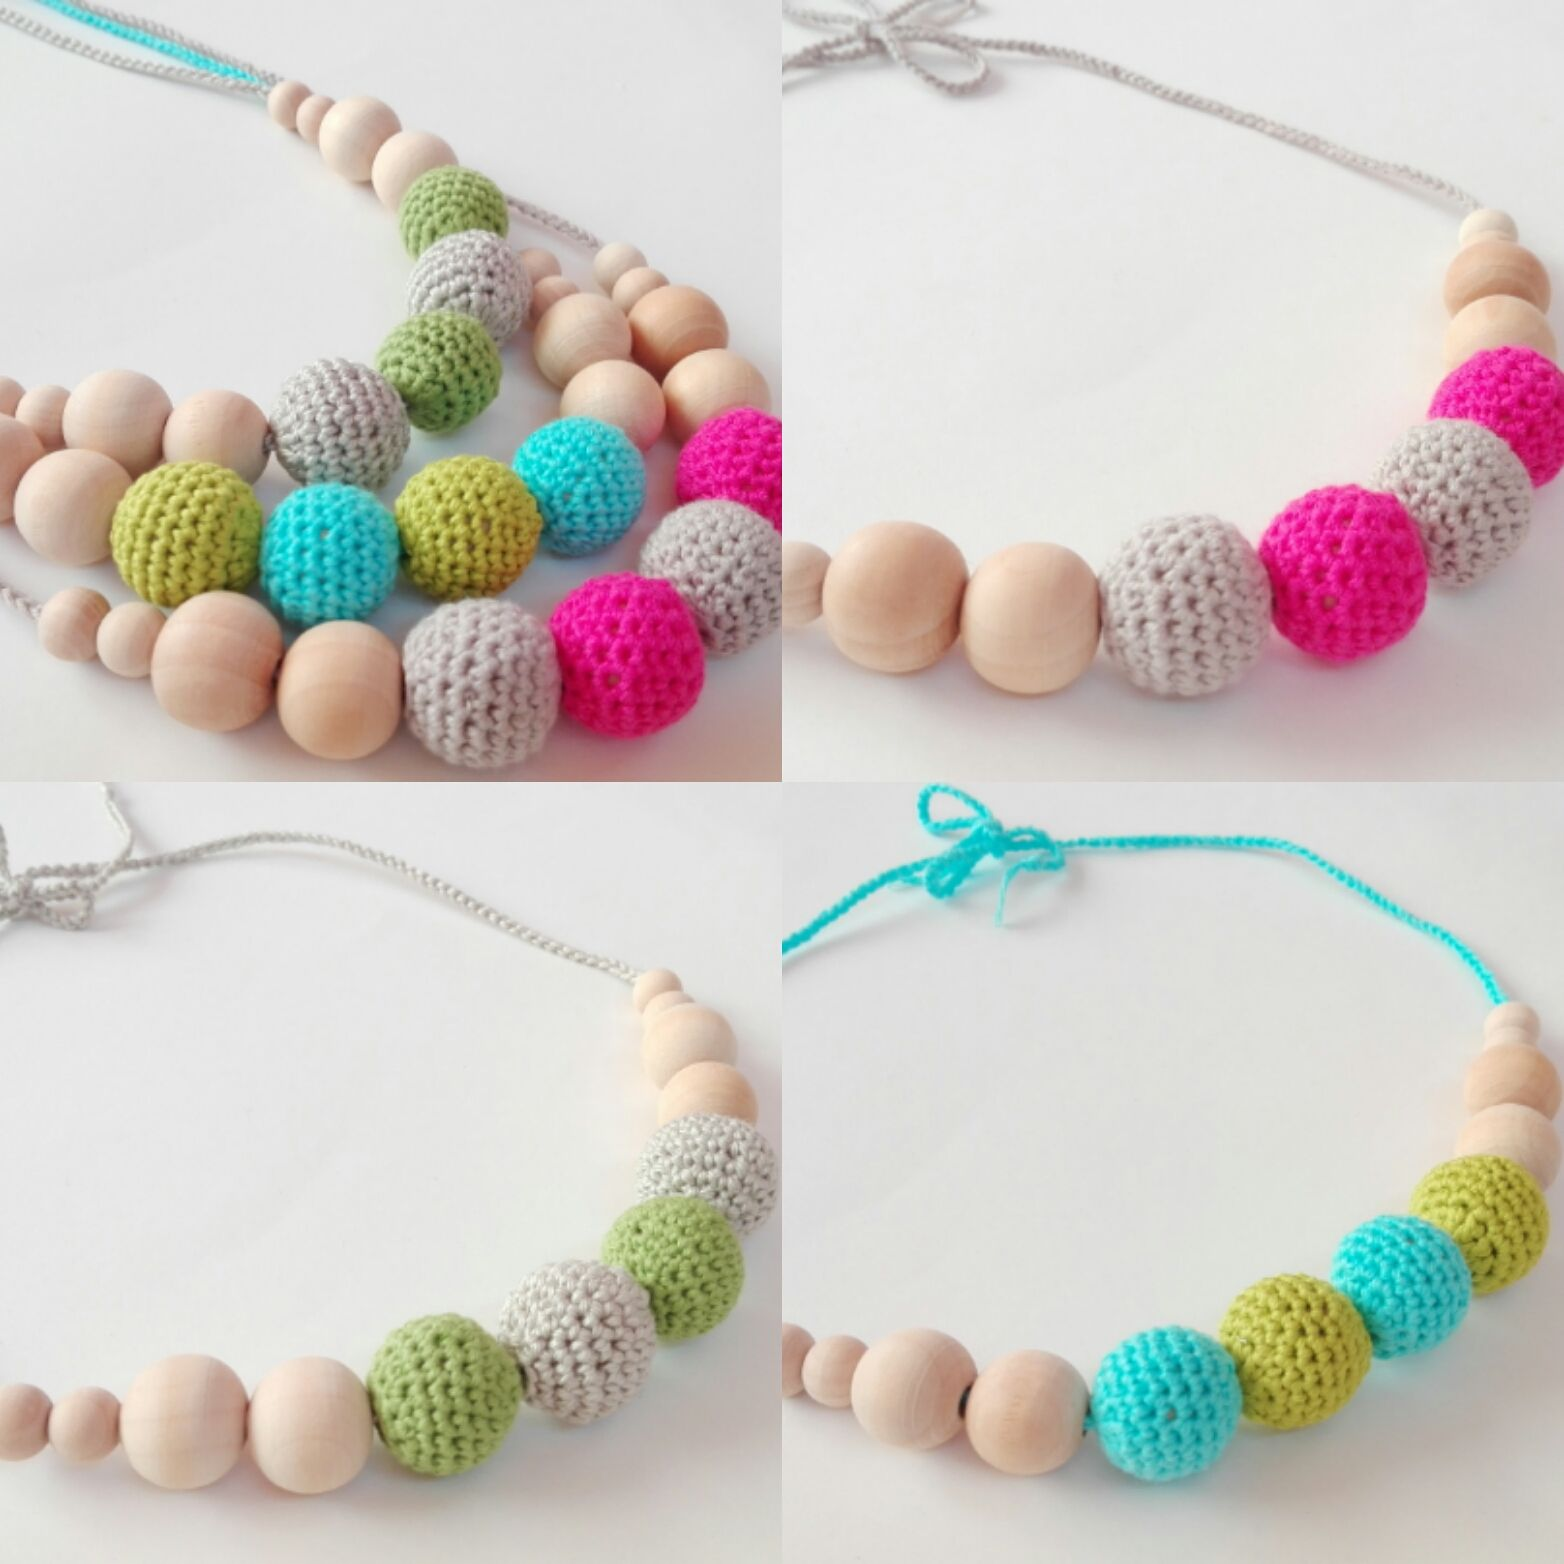 #collaresdelactancia #mordedormadera #juguetemadera #breastfeedingnecklaces #woodenteether #woodenteethingtoy